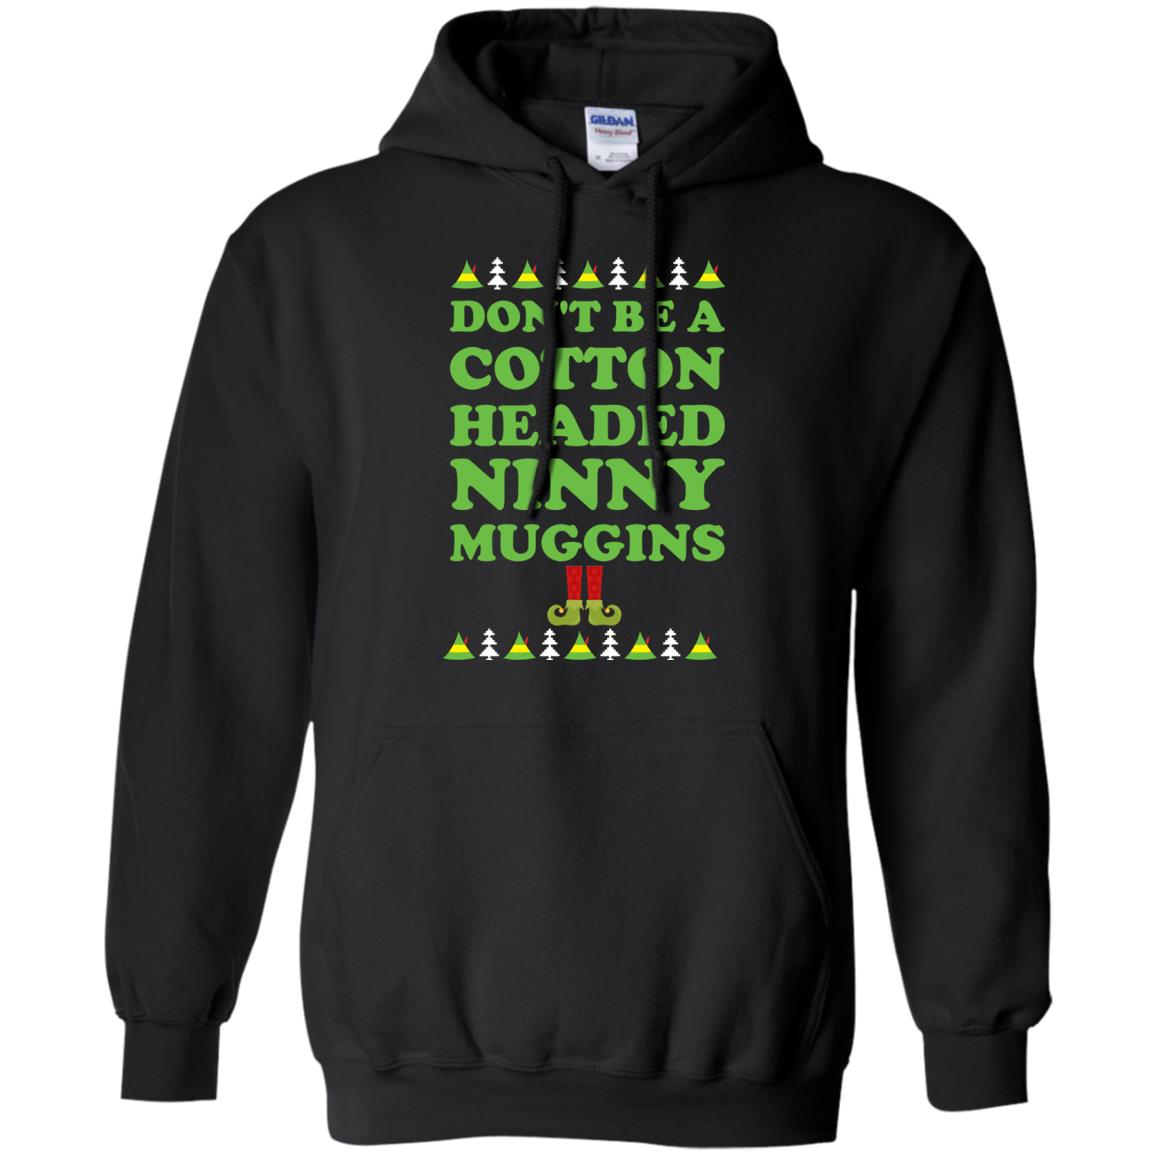 image 2796 - Elf Don't Be a Cotton Headed Ninny Muggins Christmas Sweater, Hoodie